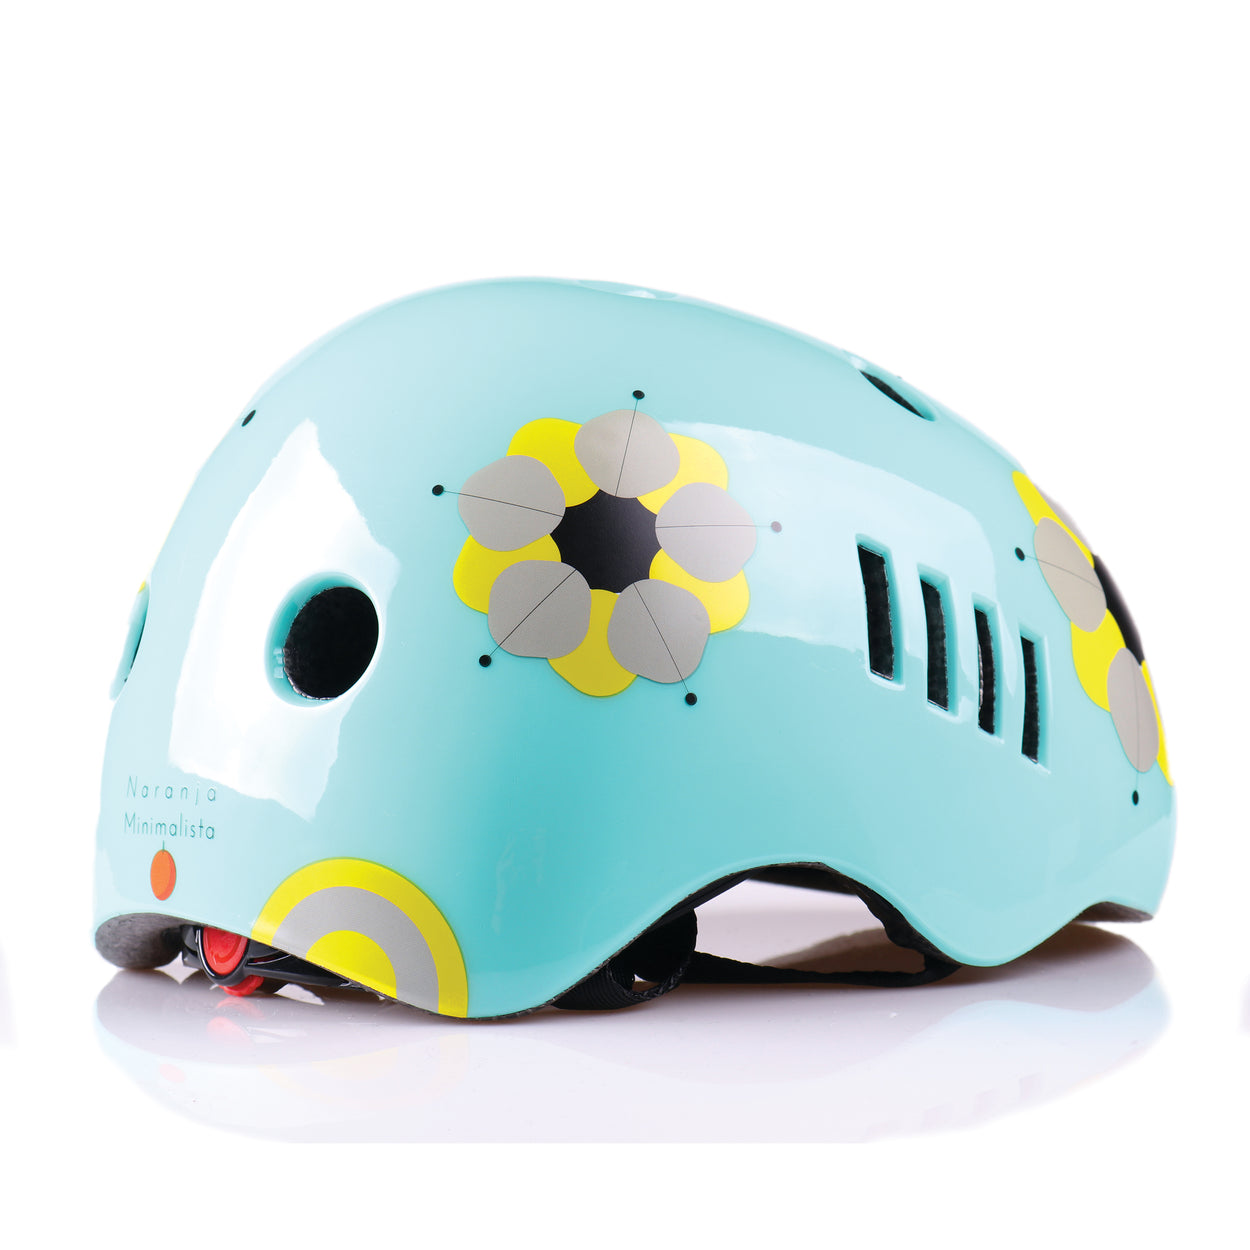 Kids bike helmet with boho chic design right view